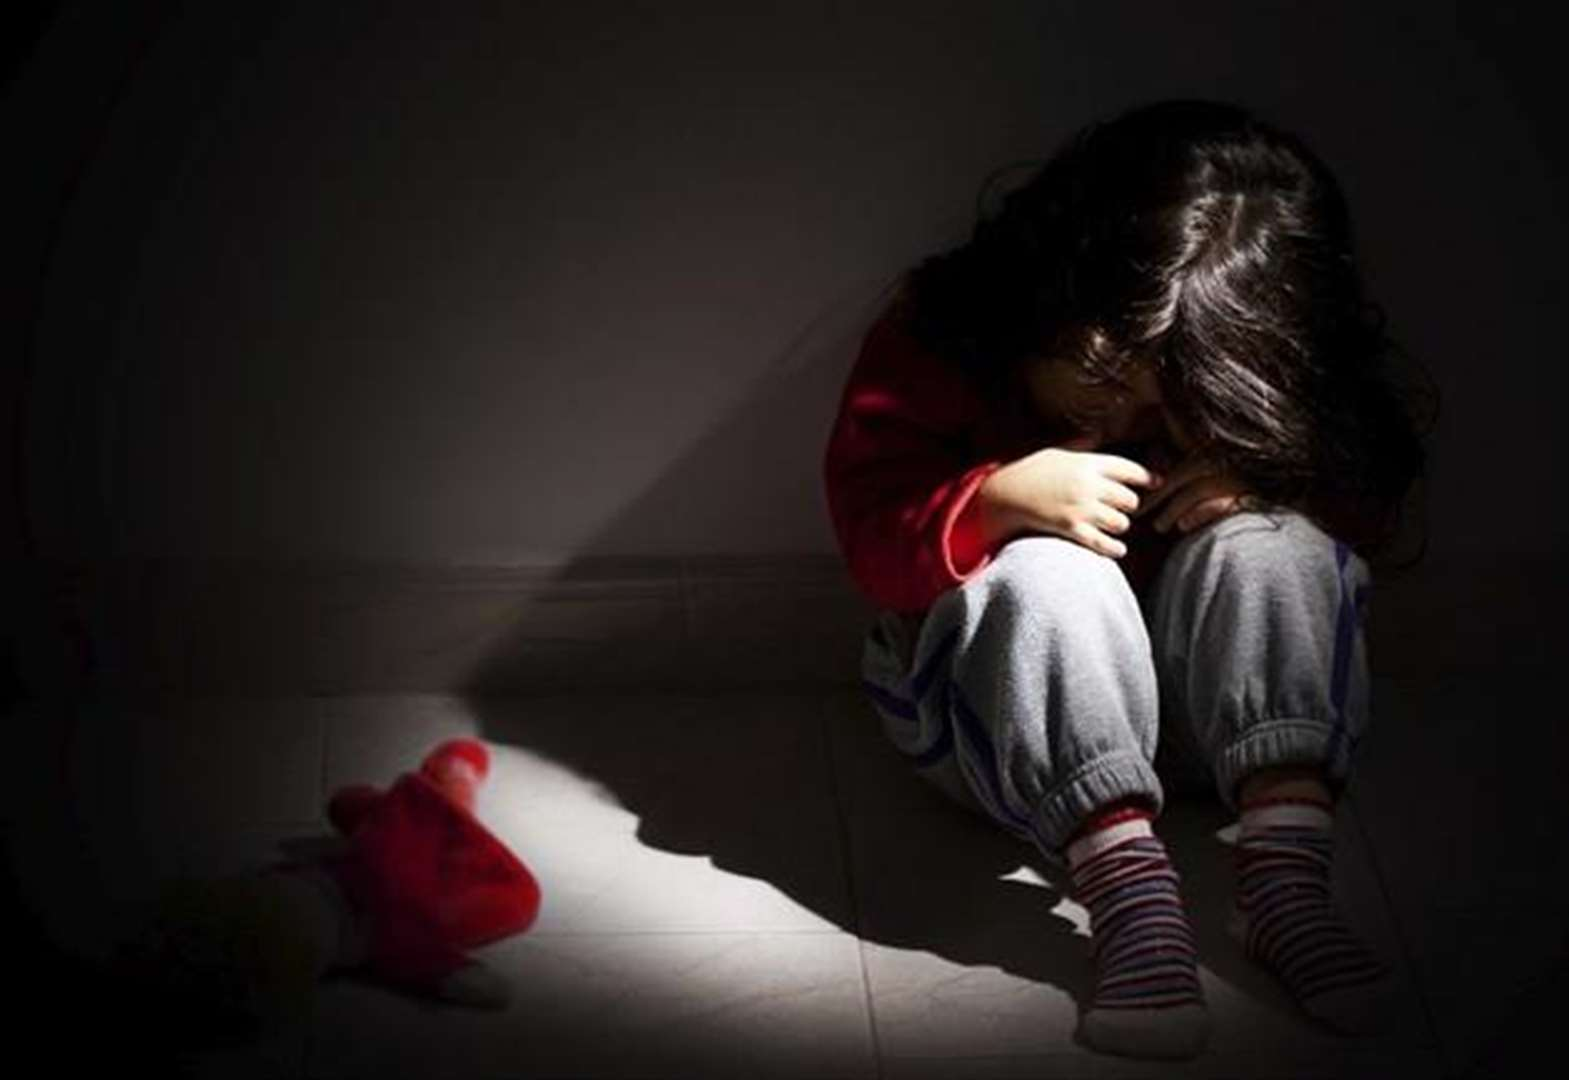 Stark rise in child cruelty offences